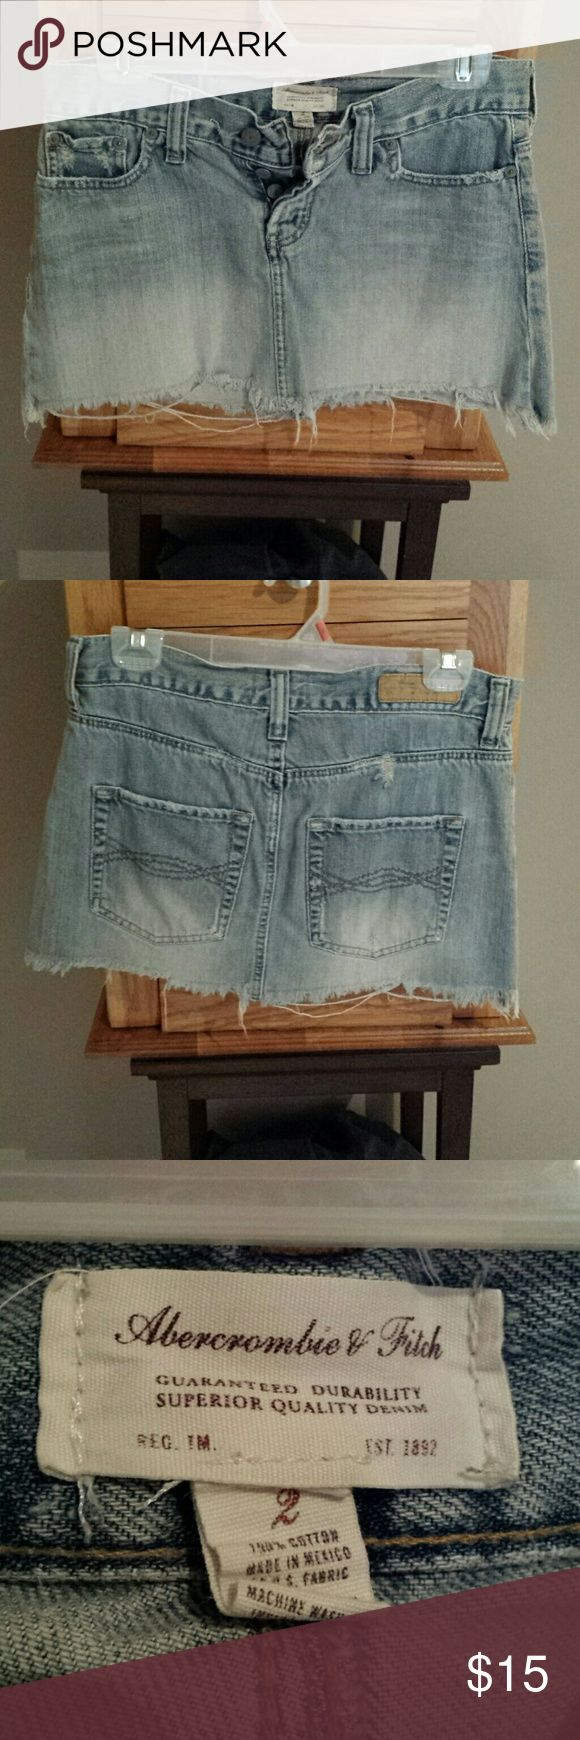 Abercrombie and Fitch jean skirt Super cute distressed jean skirt Abercrombie & Fitch Skirts Mini